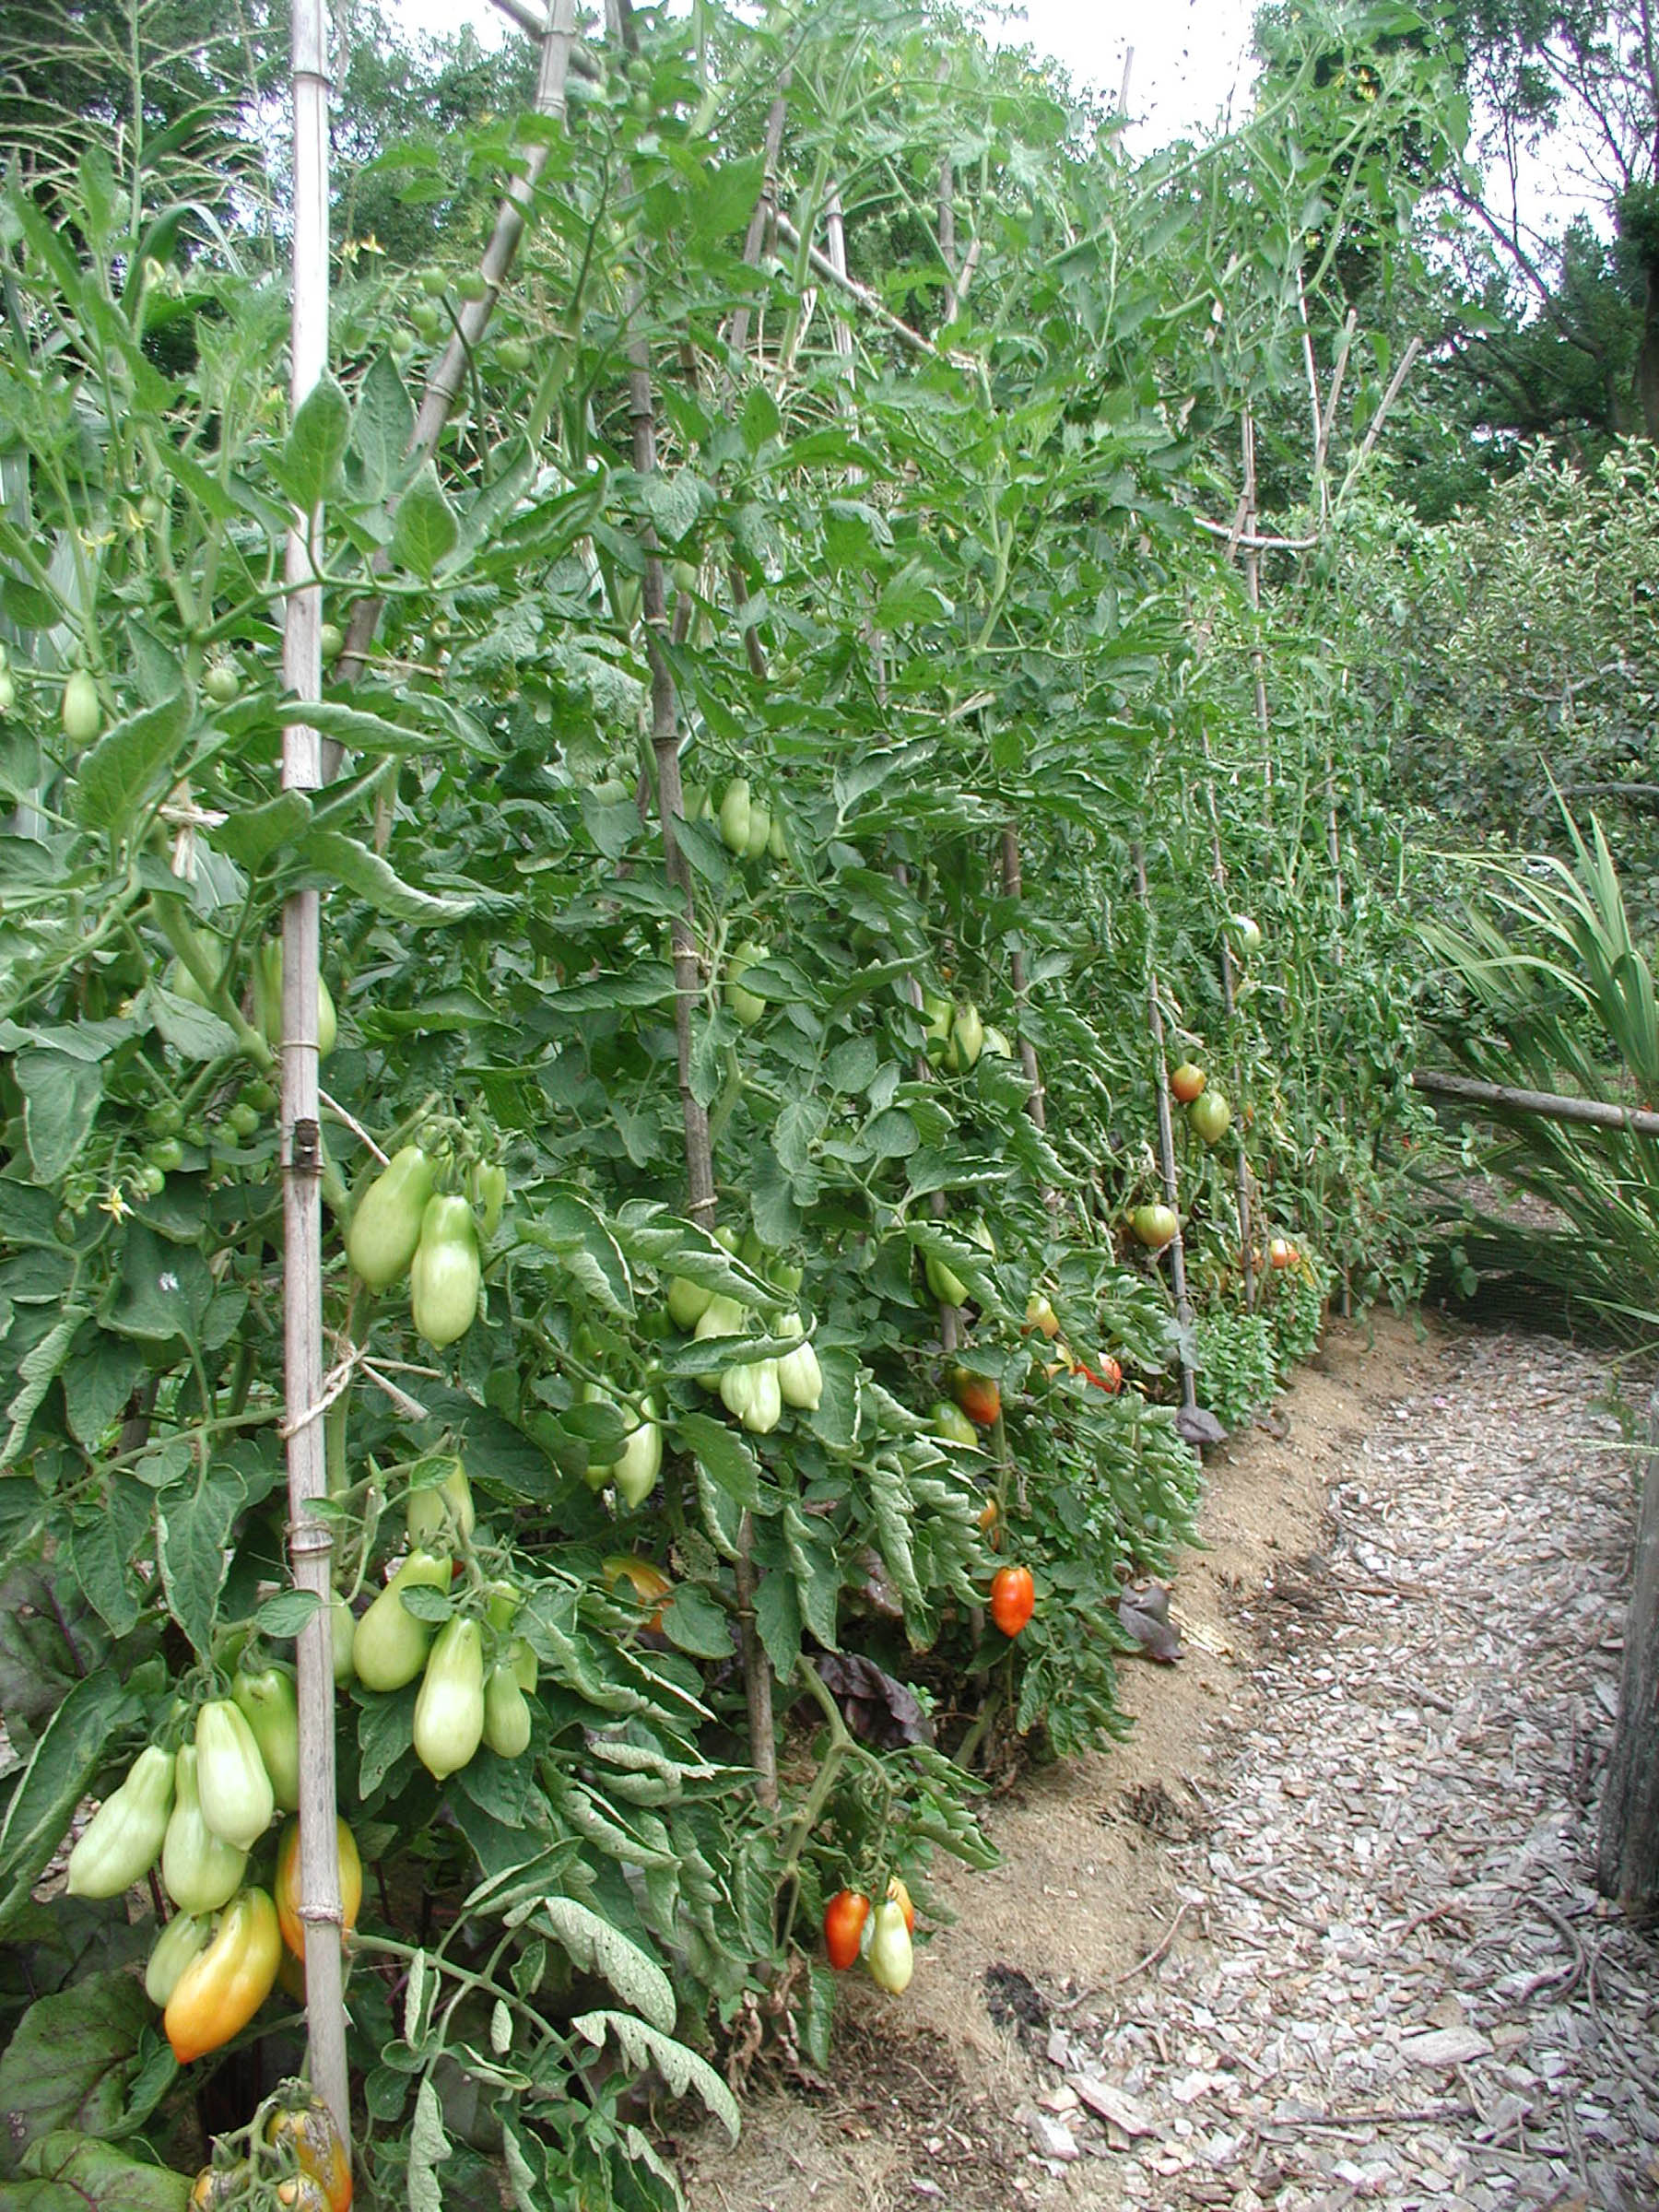 For greatest yields, and to pack the most varieties into a small space, prune tomatoes and train them to stakes.